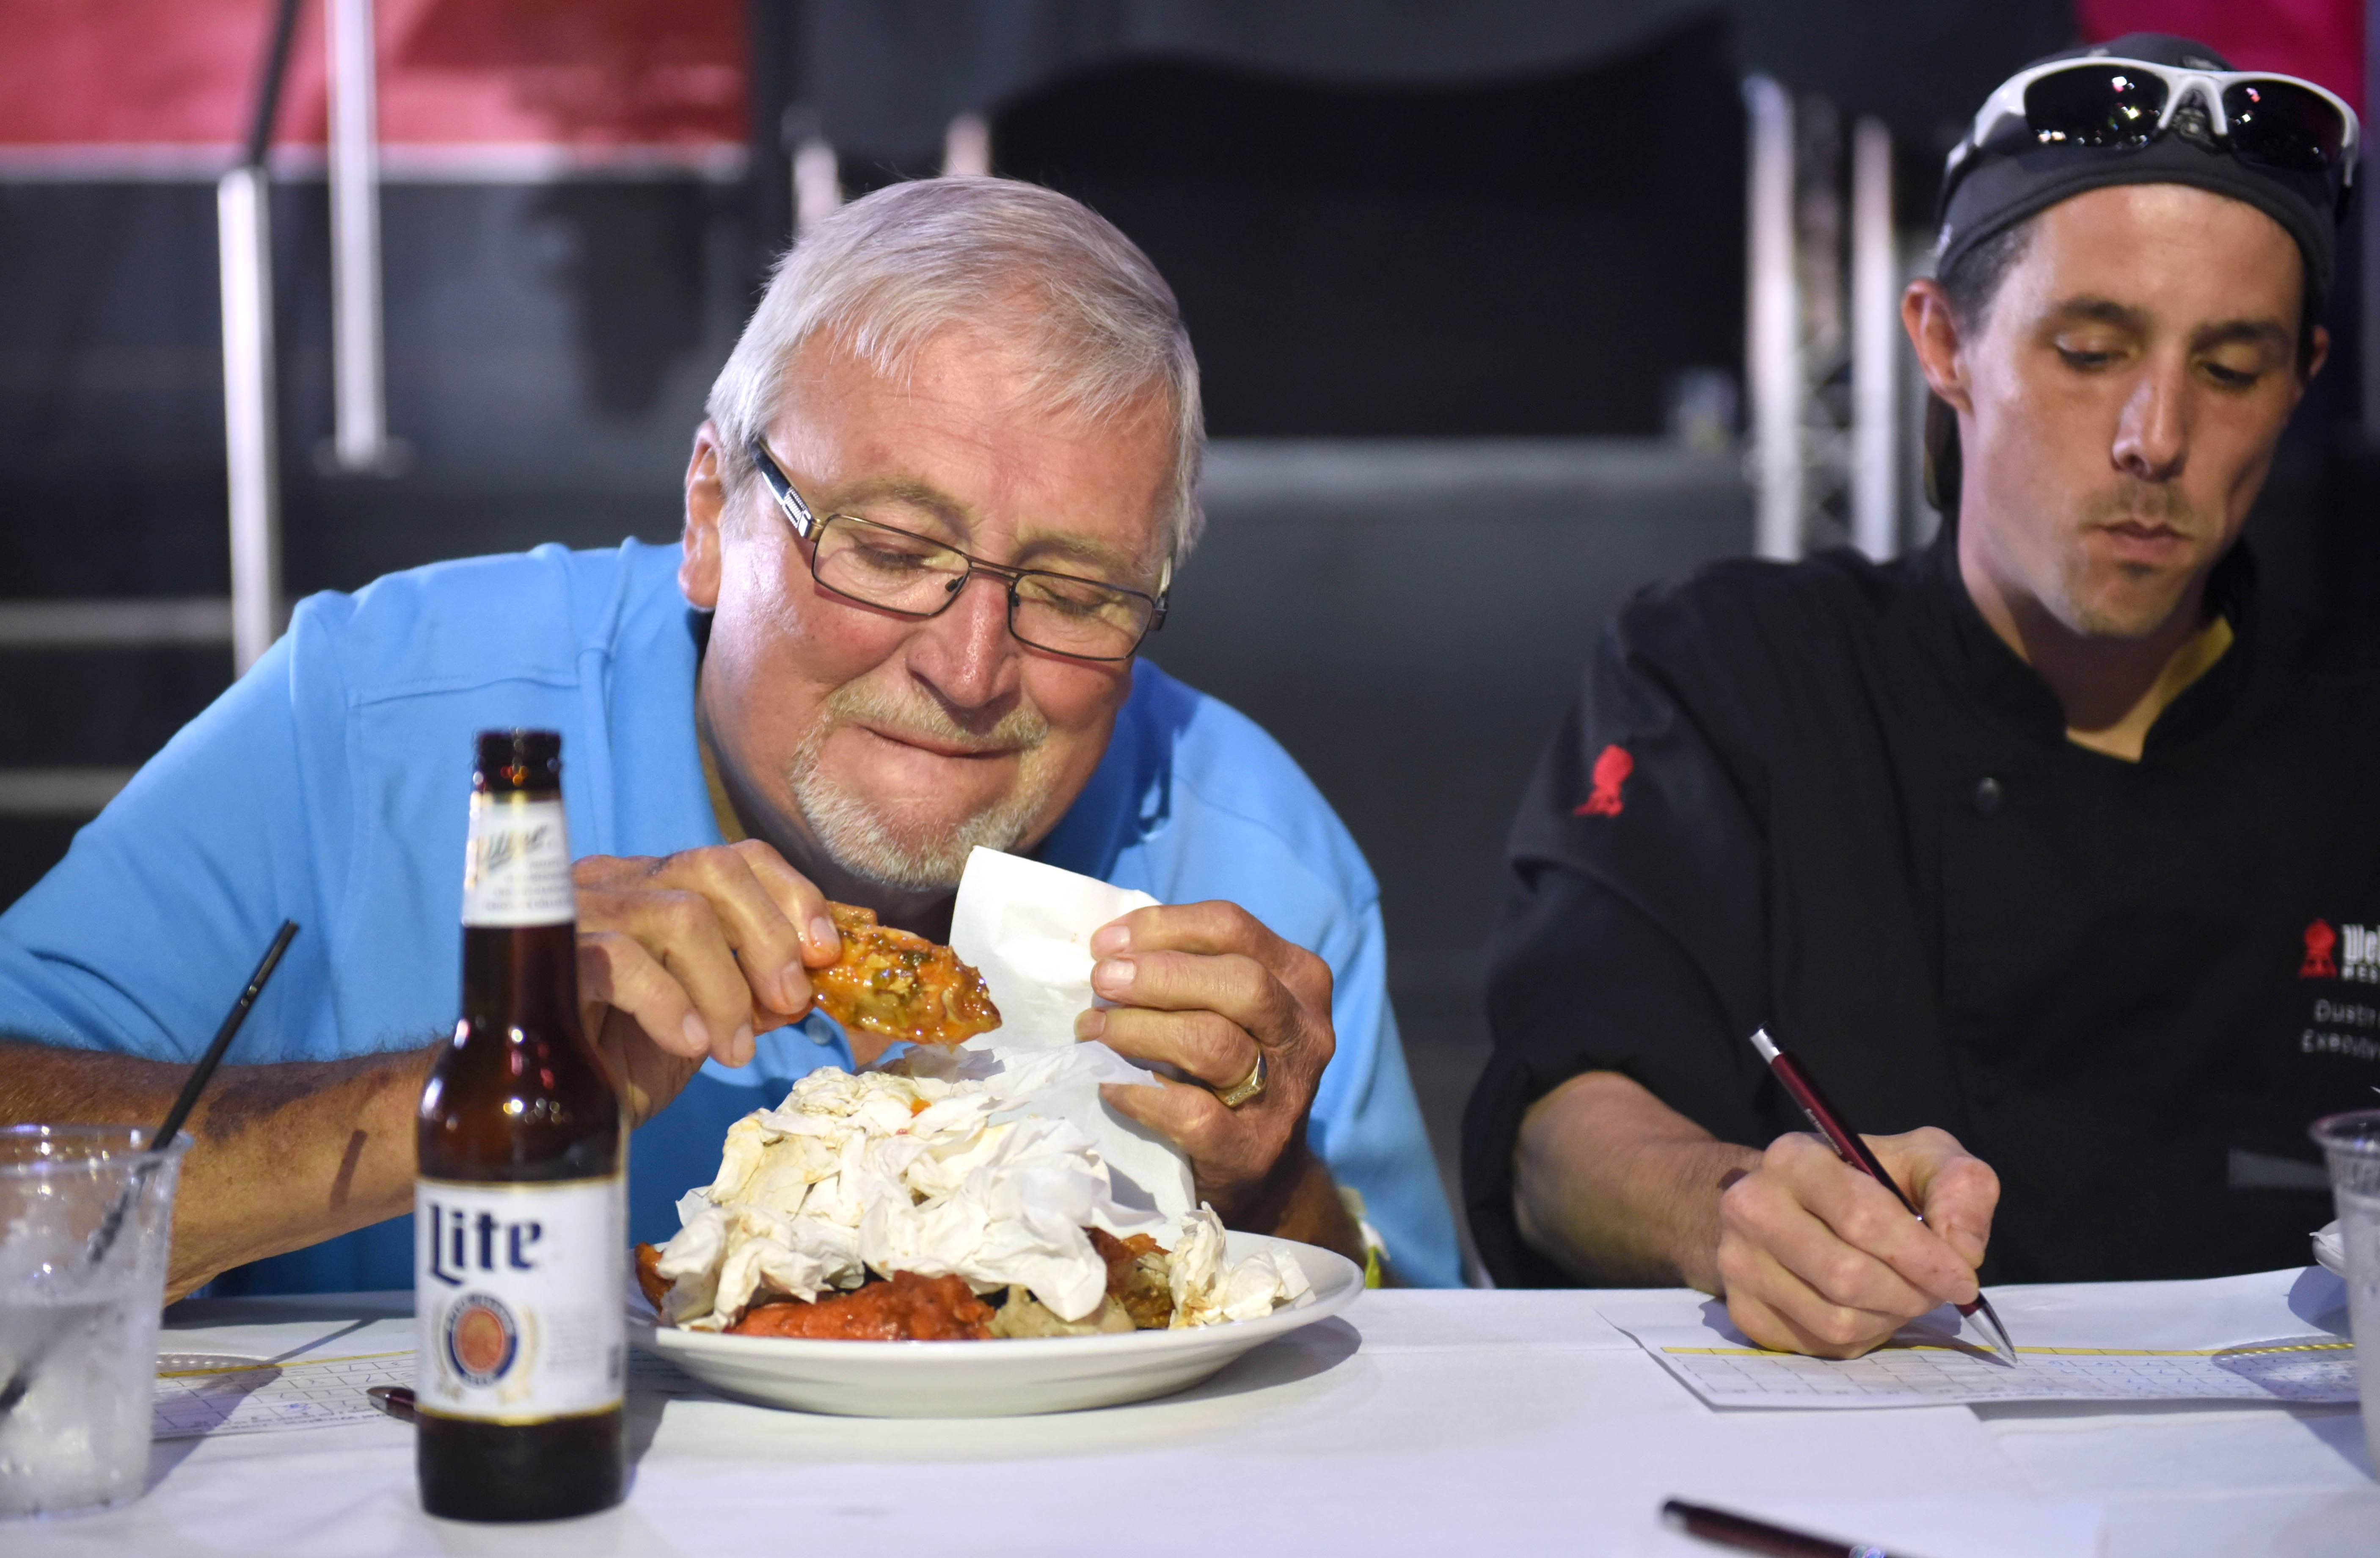 Schaumburg Trustee Frank Kozak, left, and Weber Grill Executive Chef Dustin Green judge wings Sunday during the Woodfield Area Children's Organization's 16th annual Wingfest & Bags Tournament in Schaumburg.